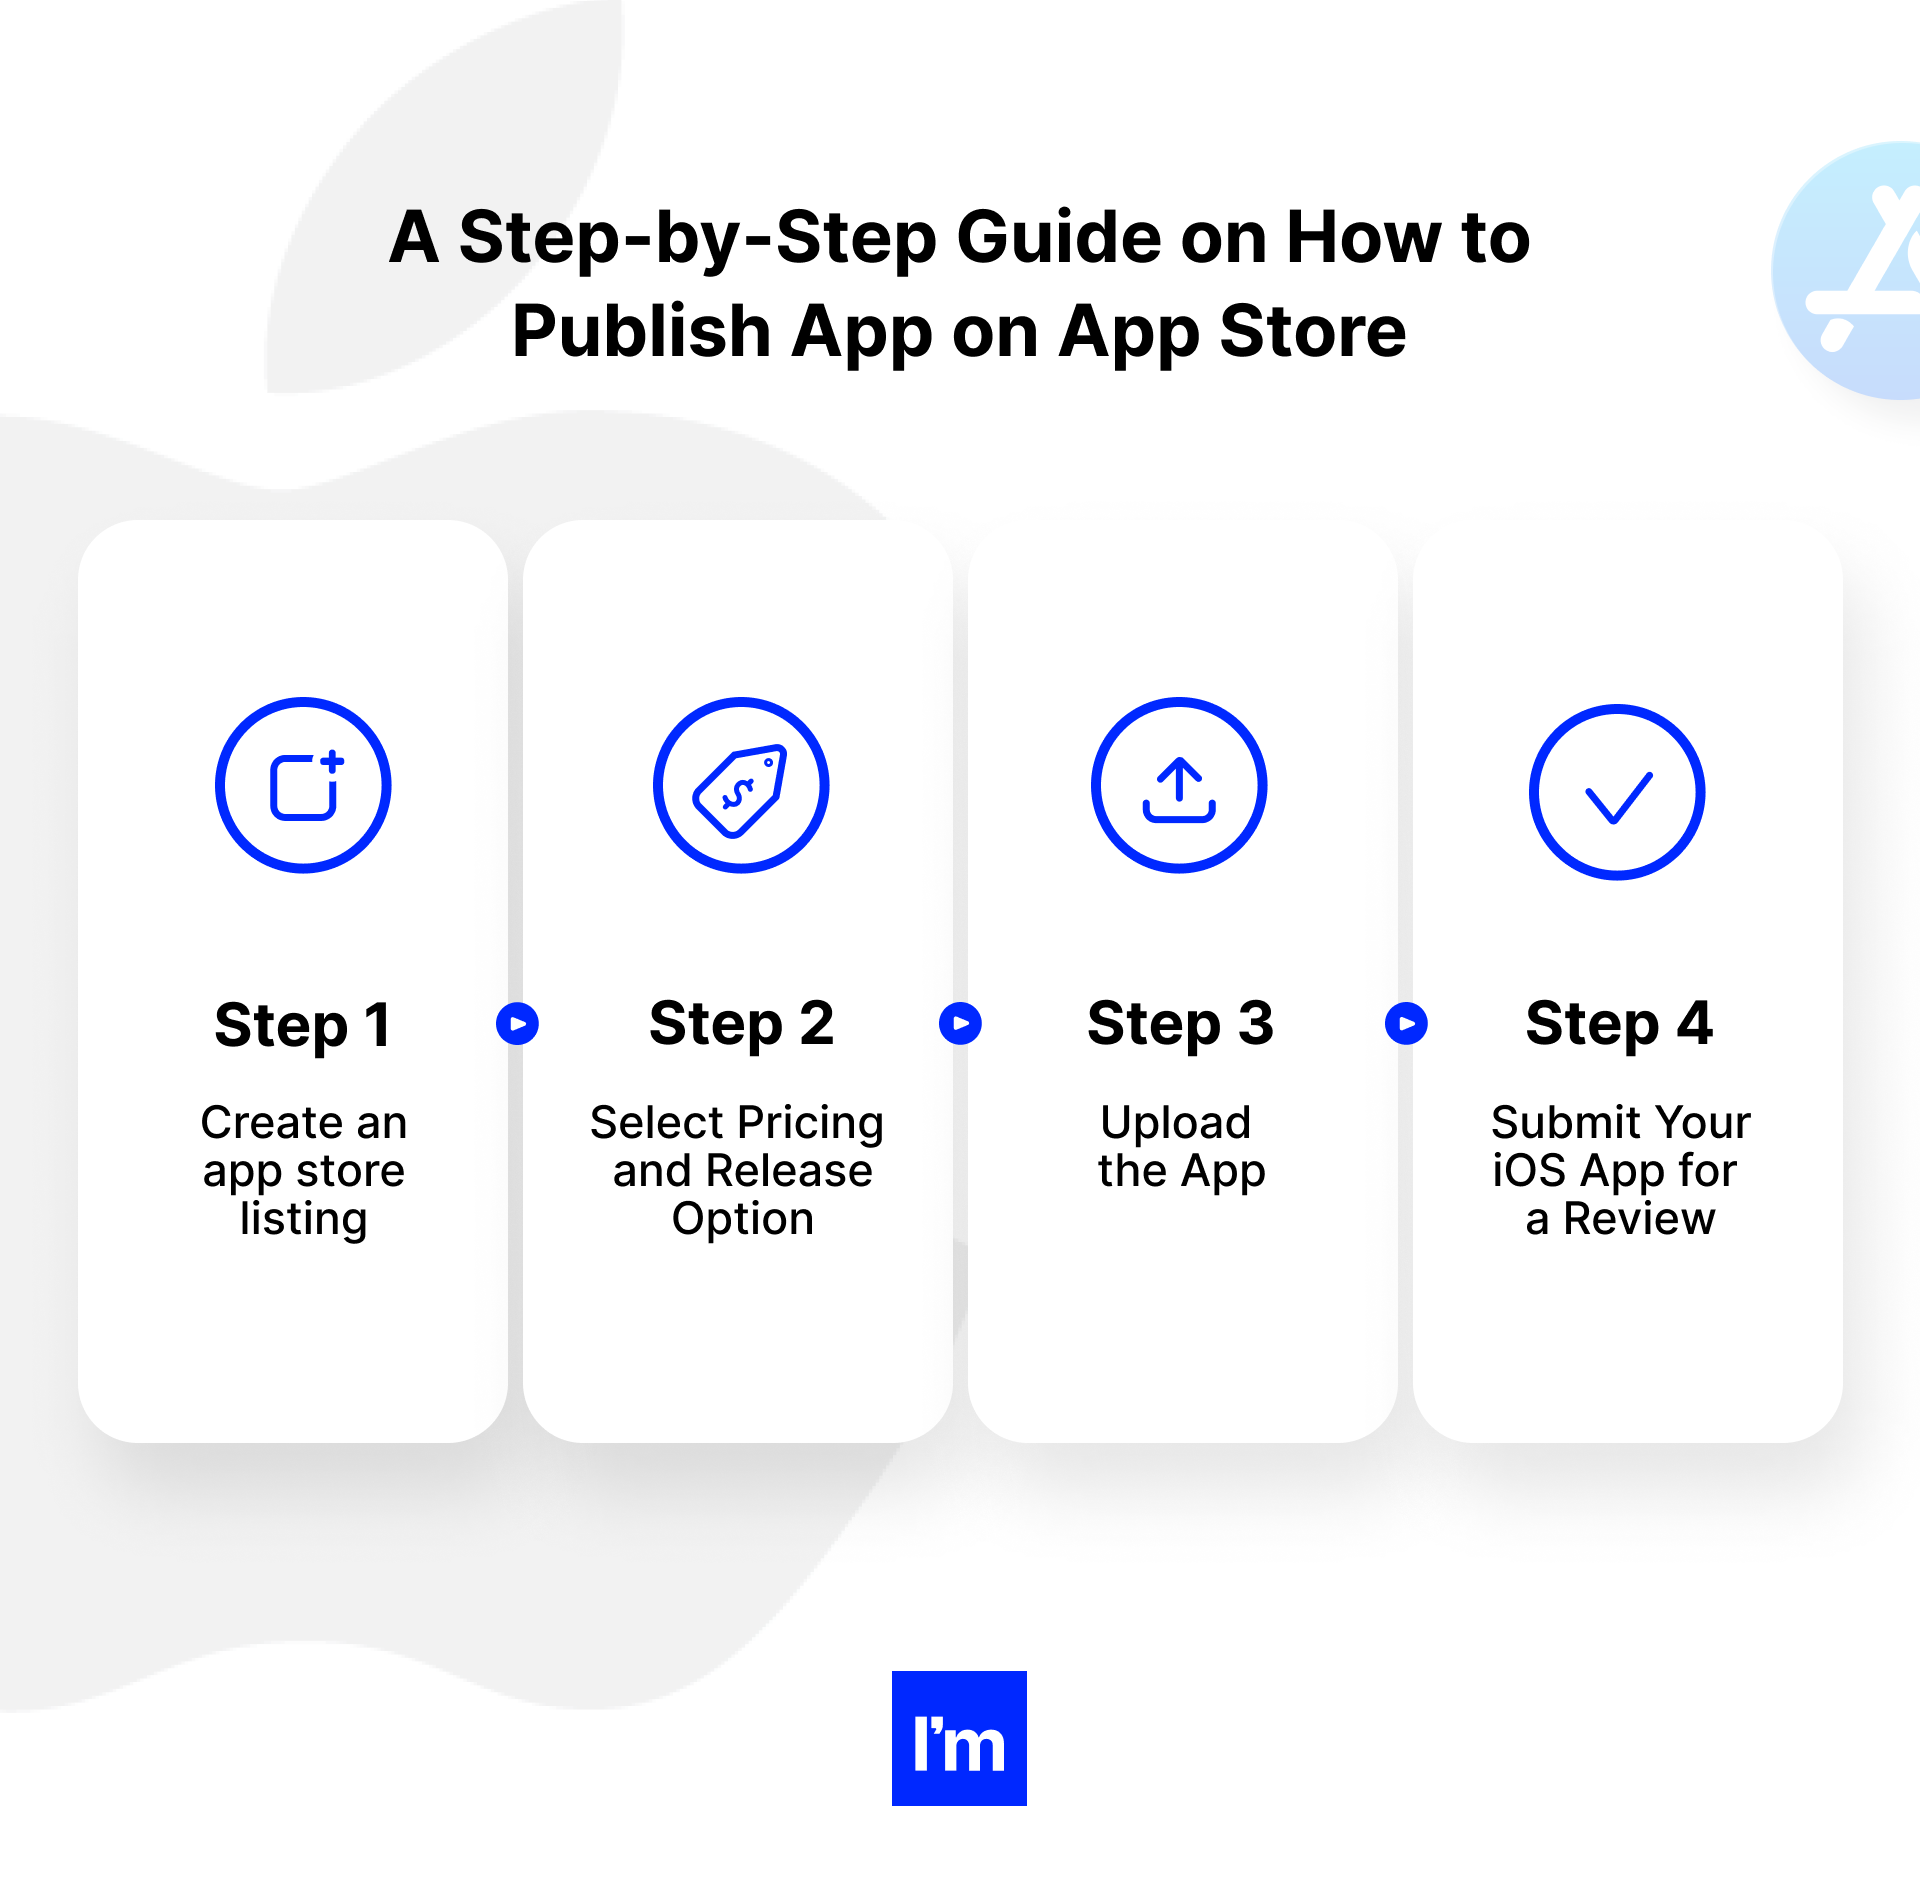 infographic - A Step-by-Step Guide on How to Publish App on App Store